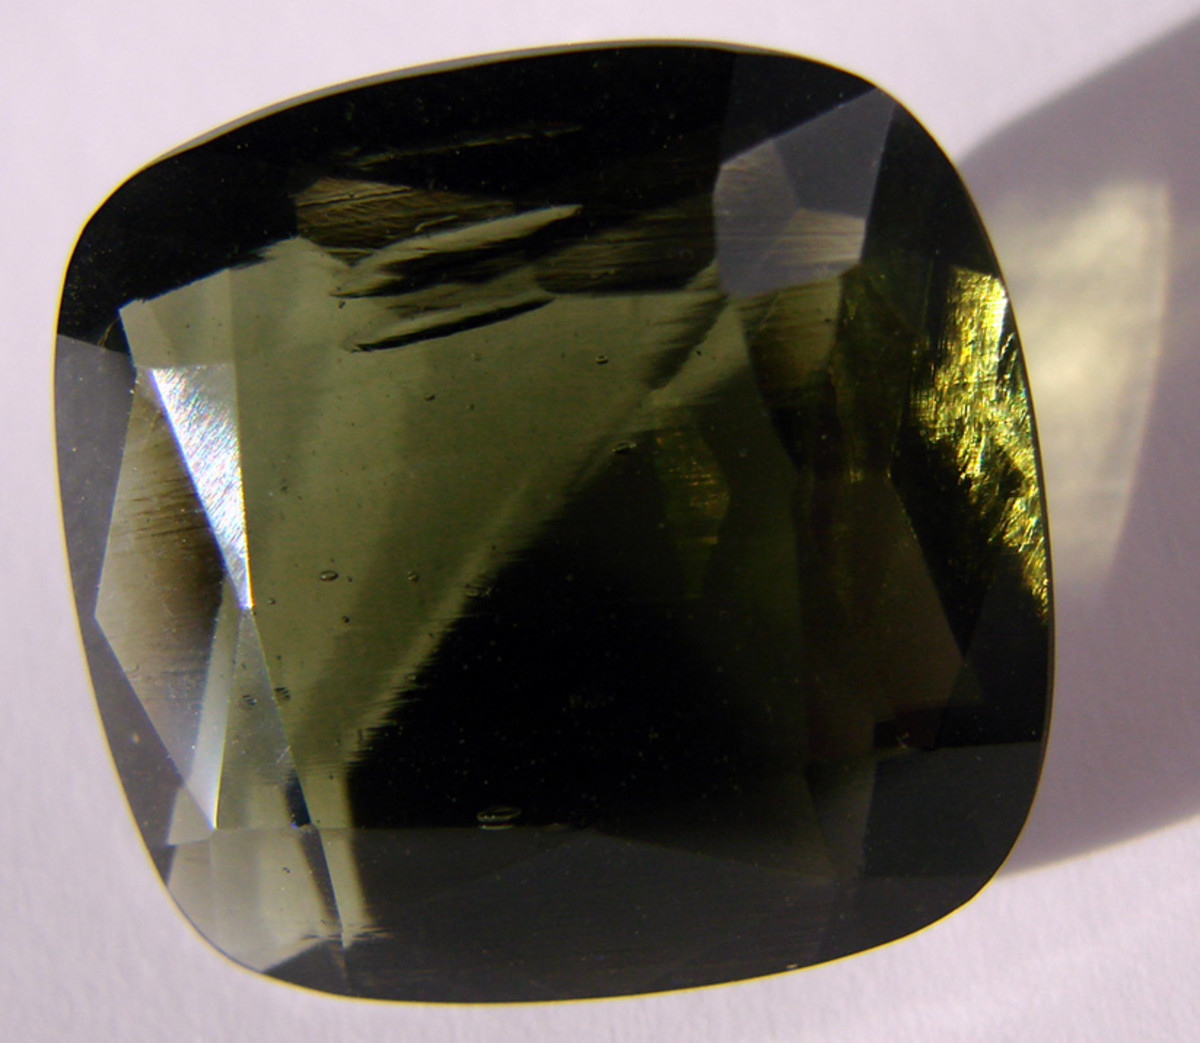 A beautifully cut moldavite specimen.